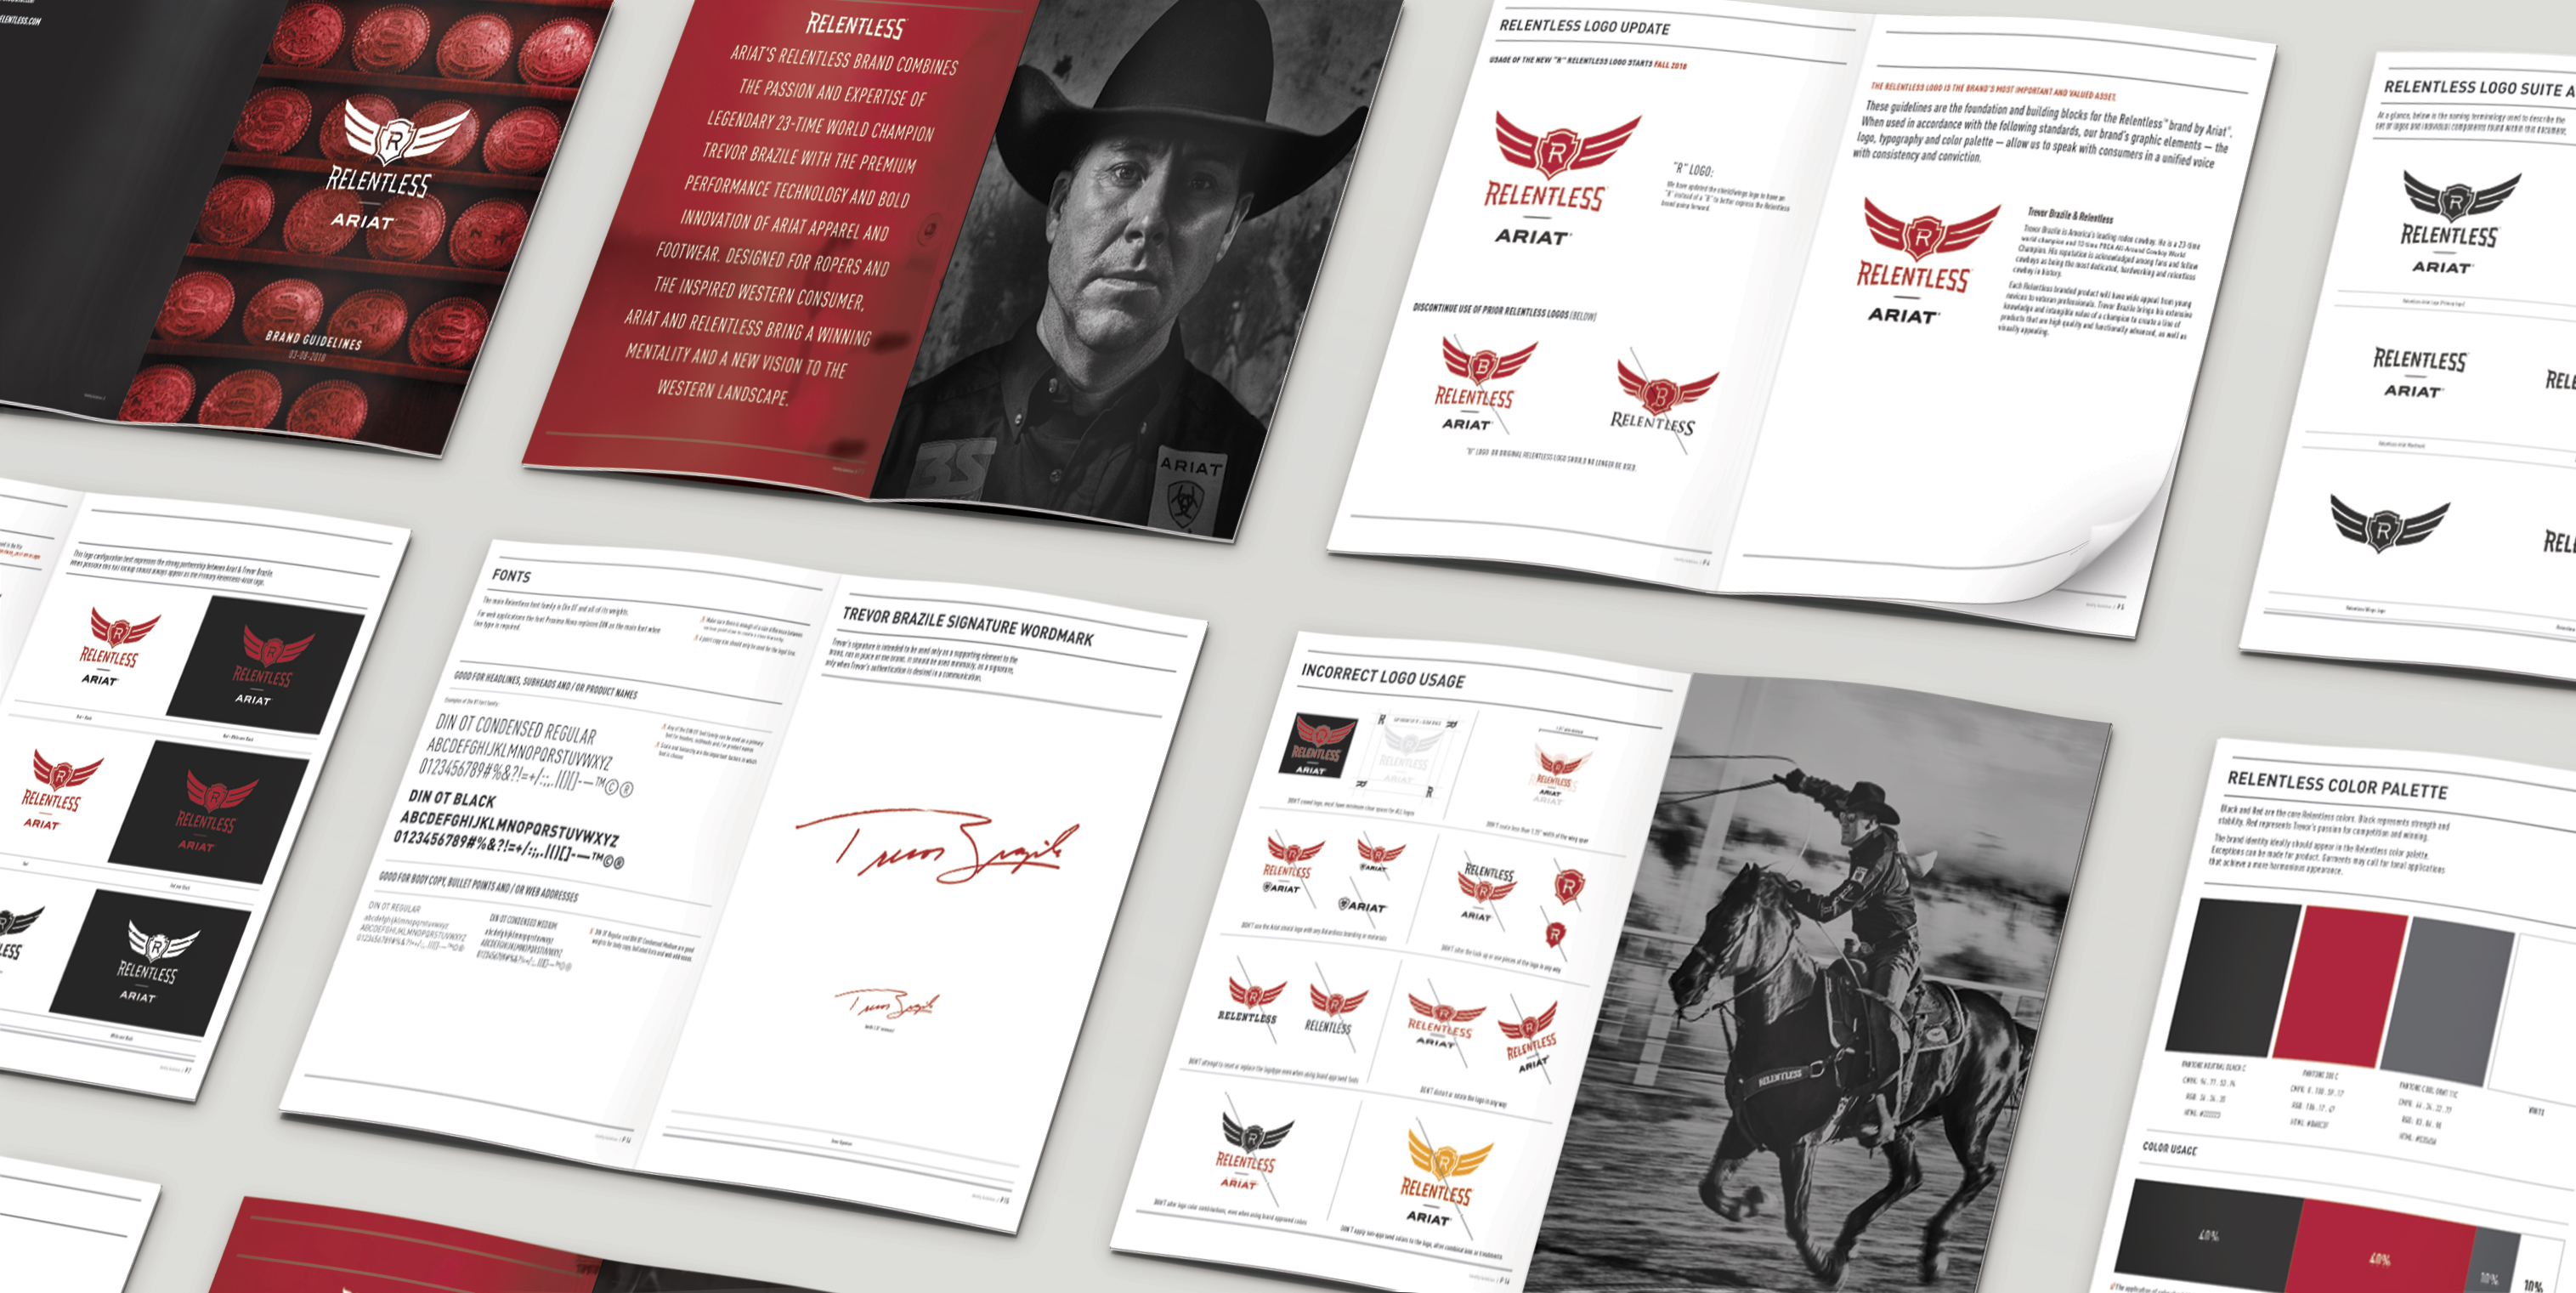 Spreads from the Ariat Relentless brand book